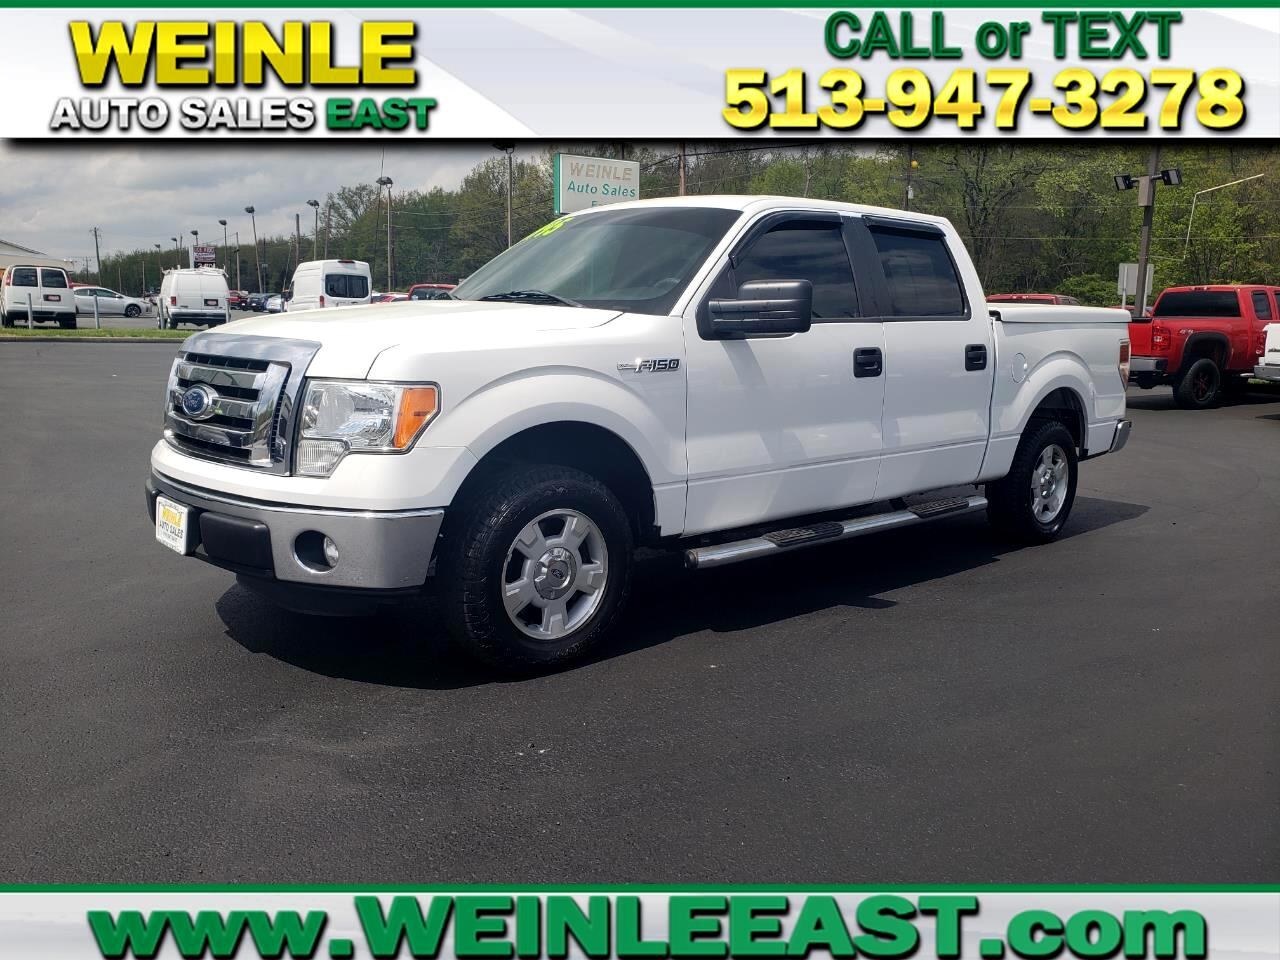 2012 Ford F-150 SUPERCREW V8 XLT CLEAN